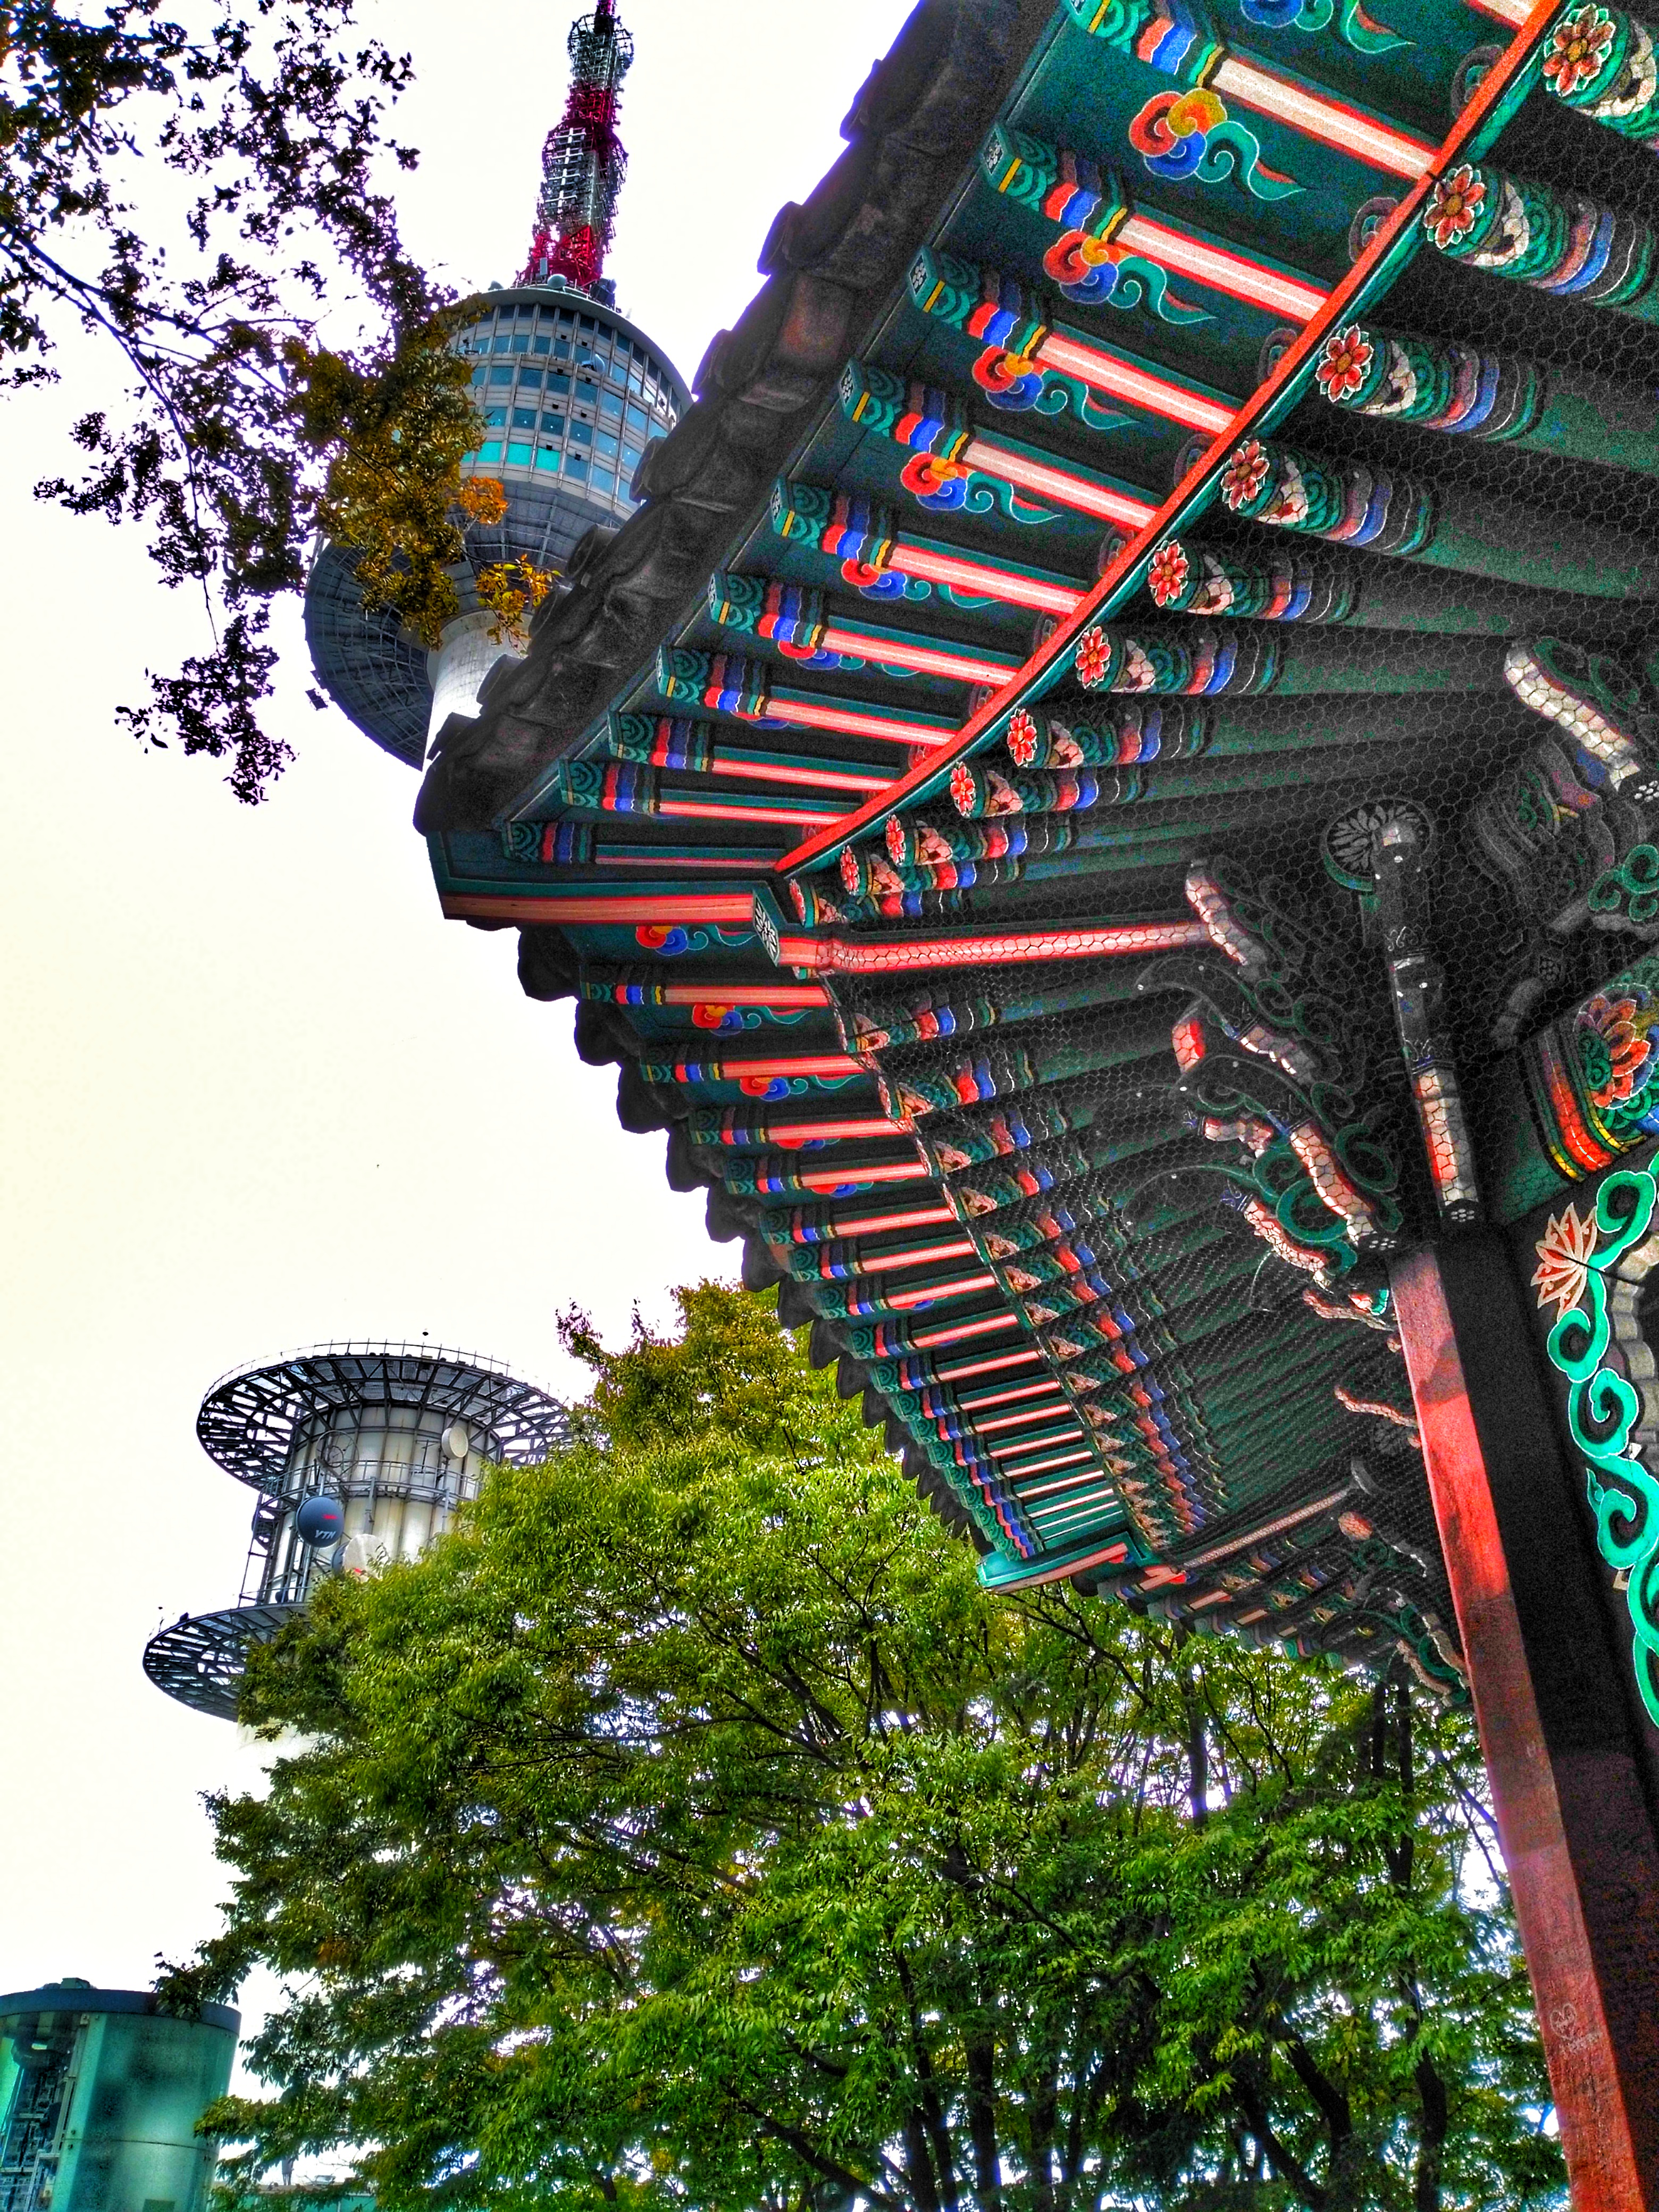 Namsan Seoul Tower - View from below